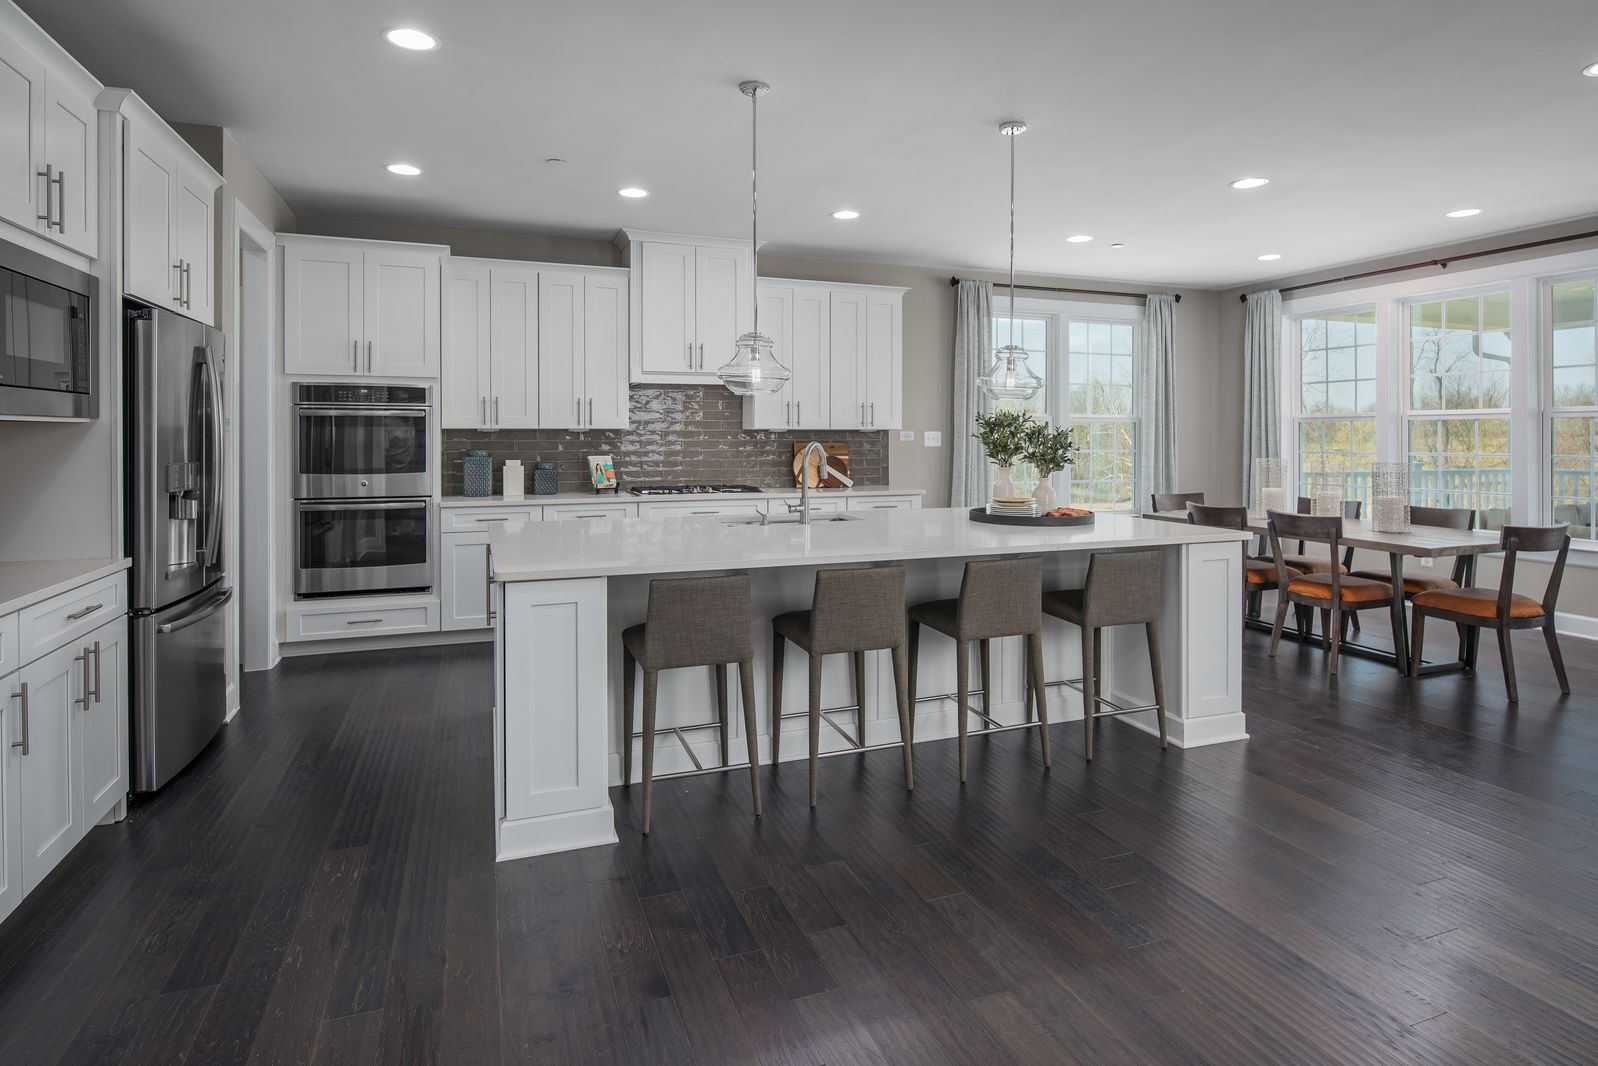 Kitchen featured in the Radford By NVHomes in Washington, VA